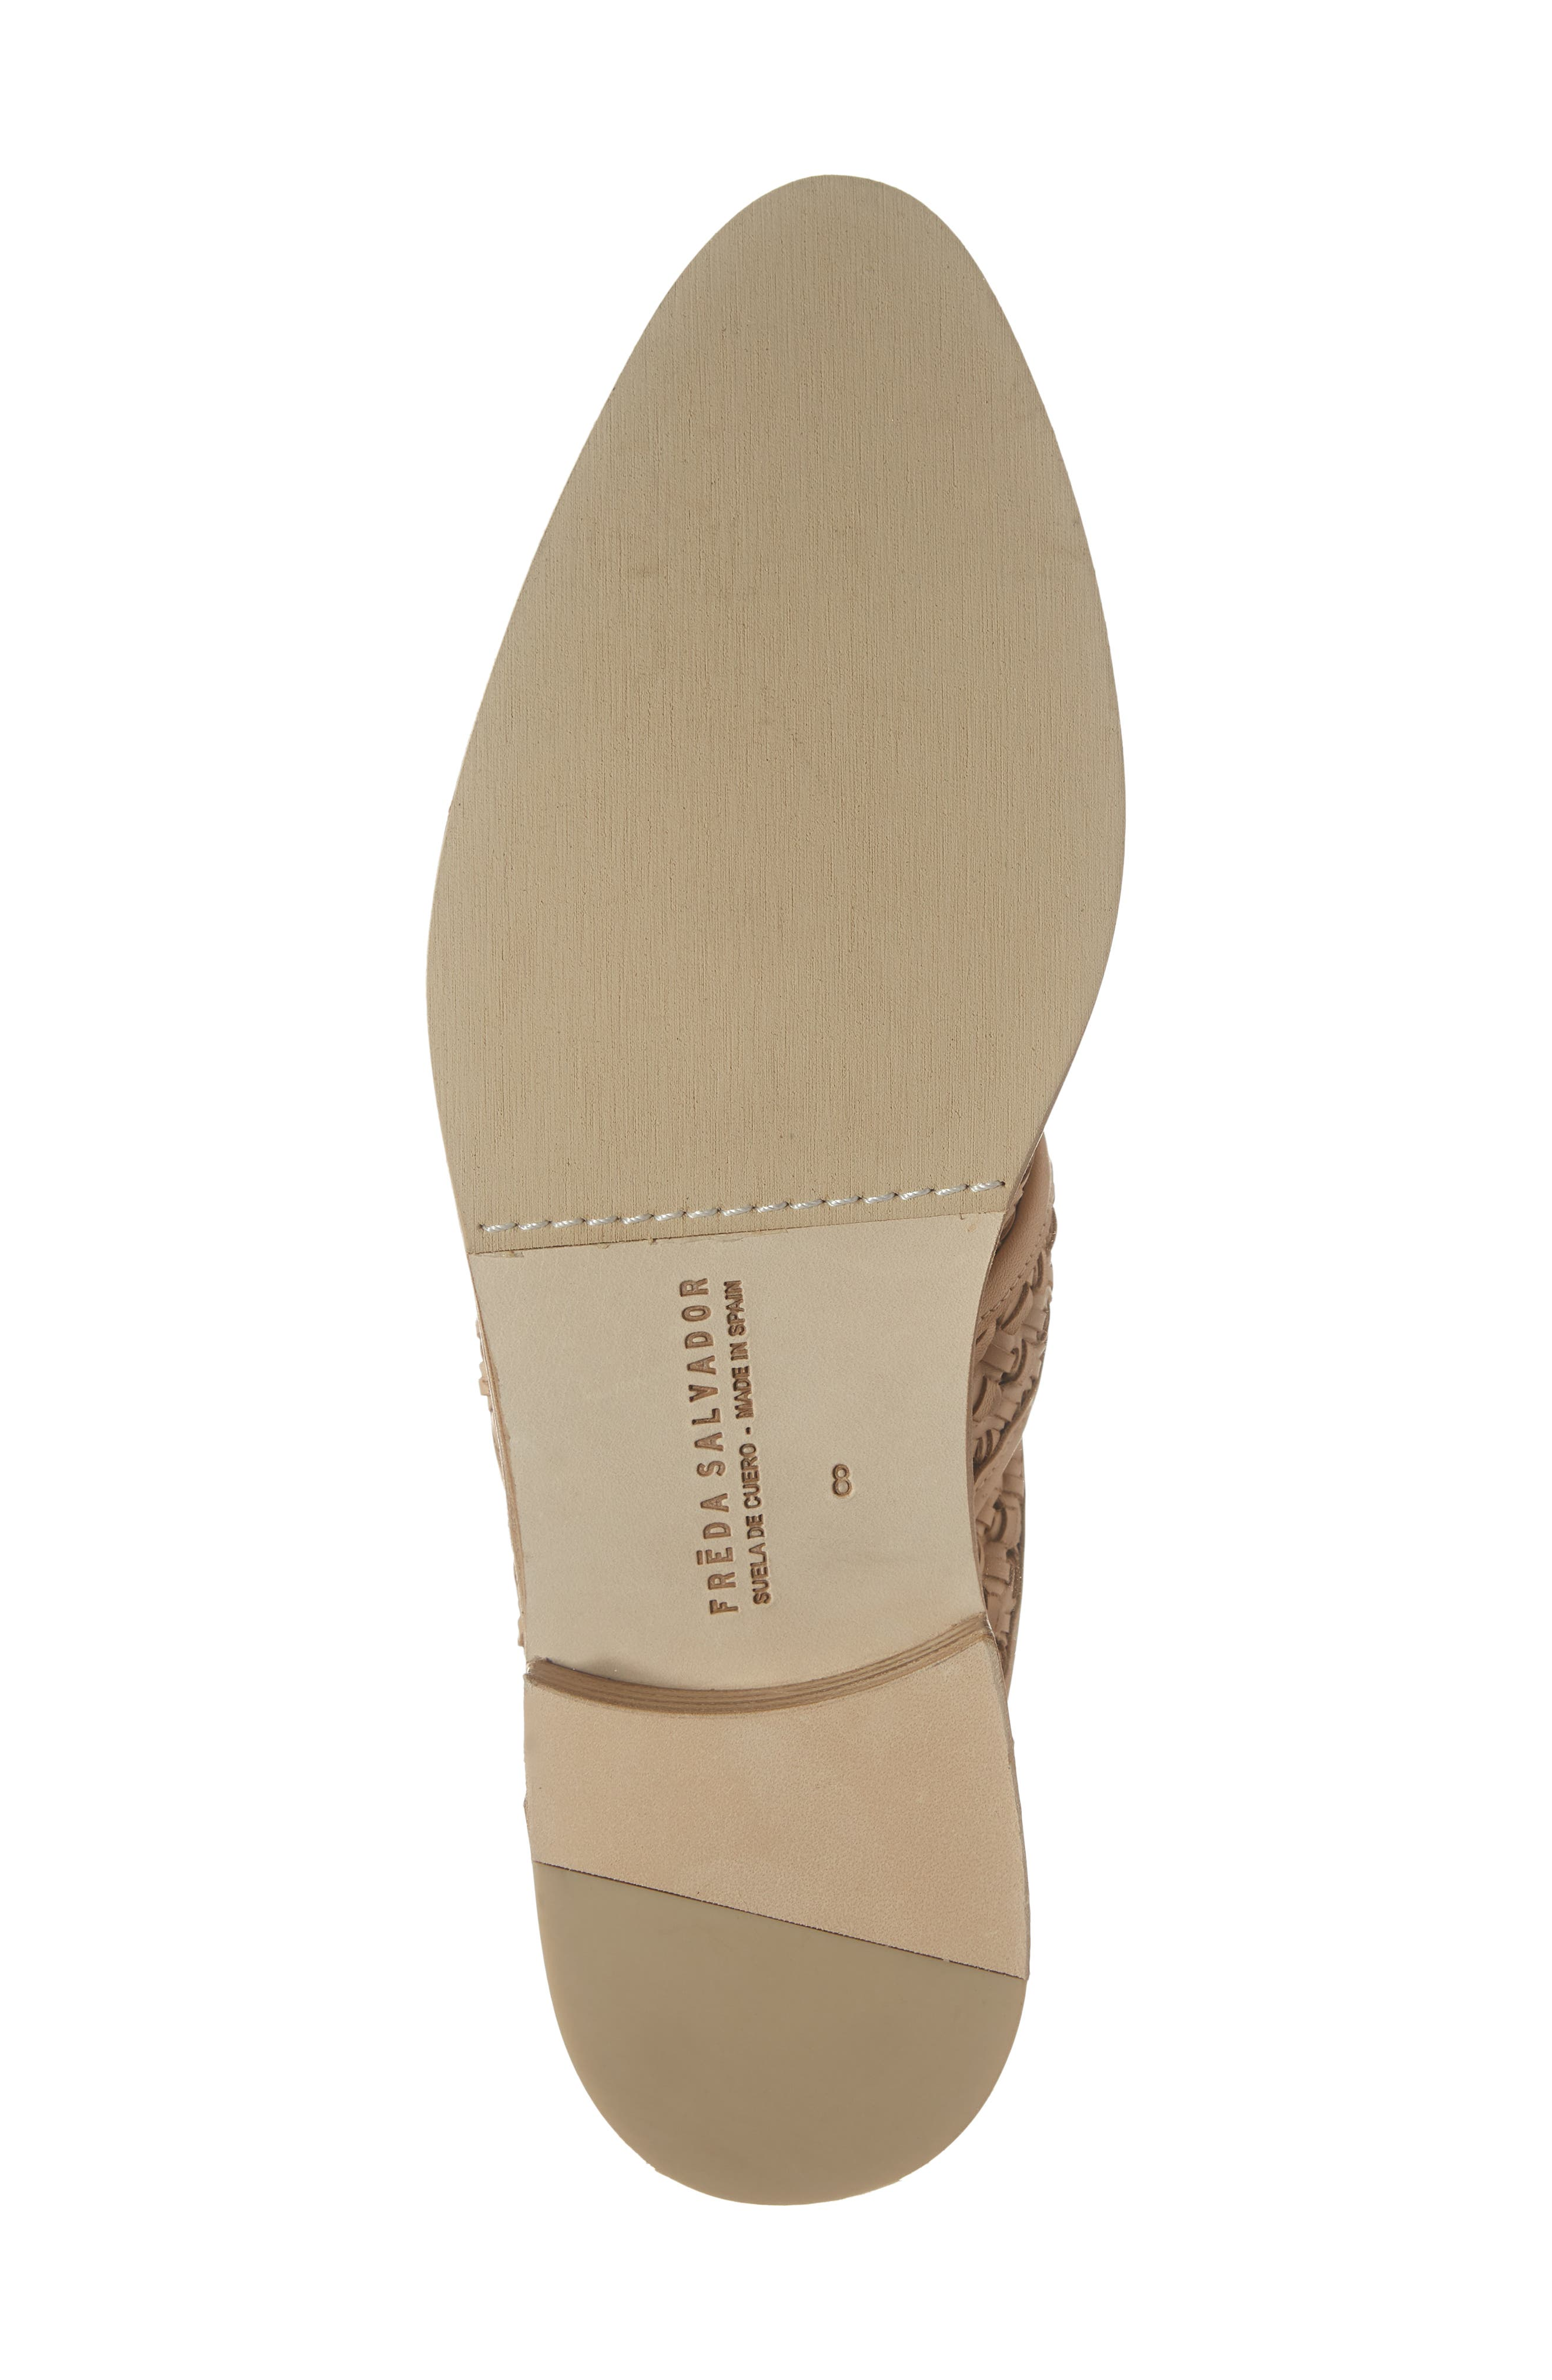 Keen Loafer Mule,                             Alternate thumbnail 6, color,                             NUDE WOVEN